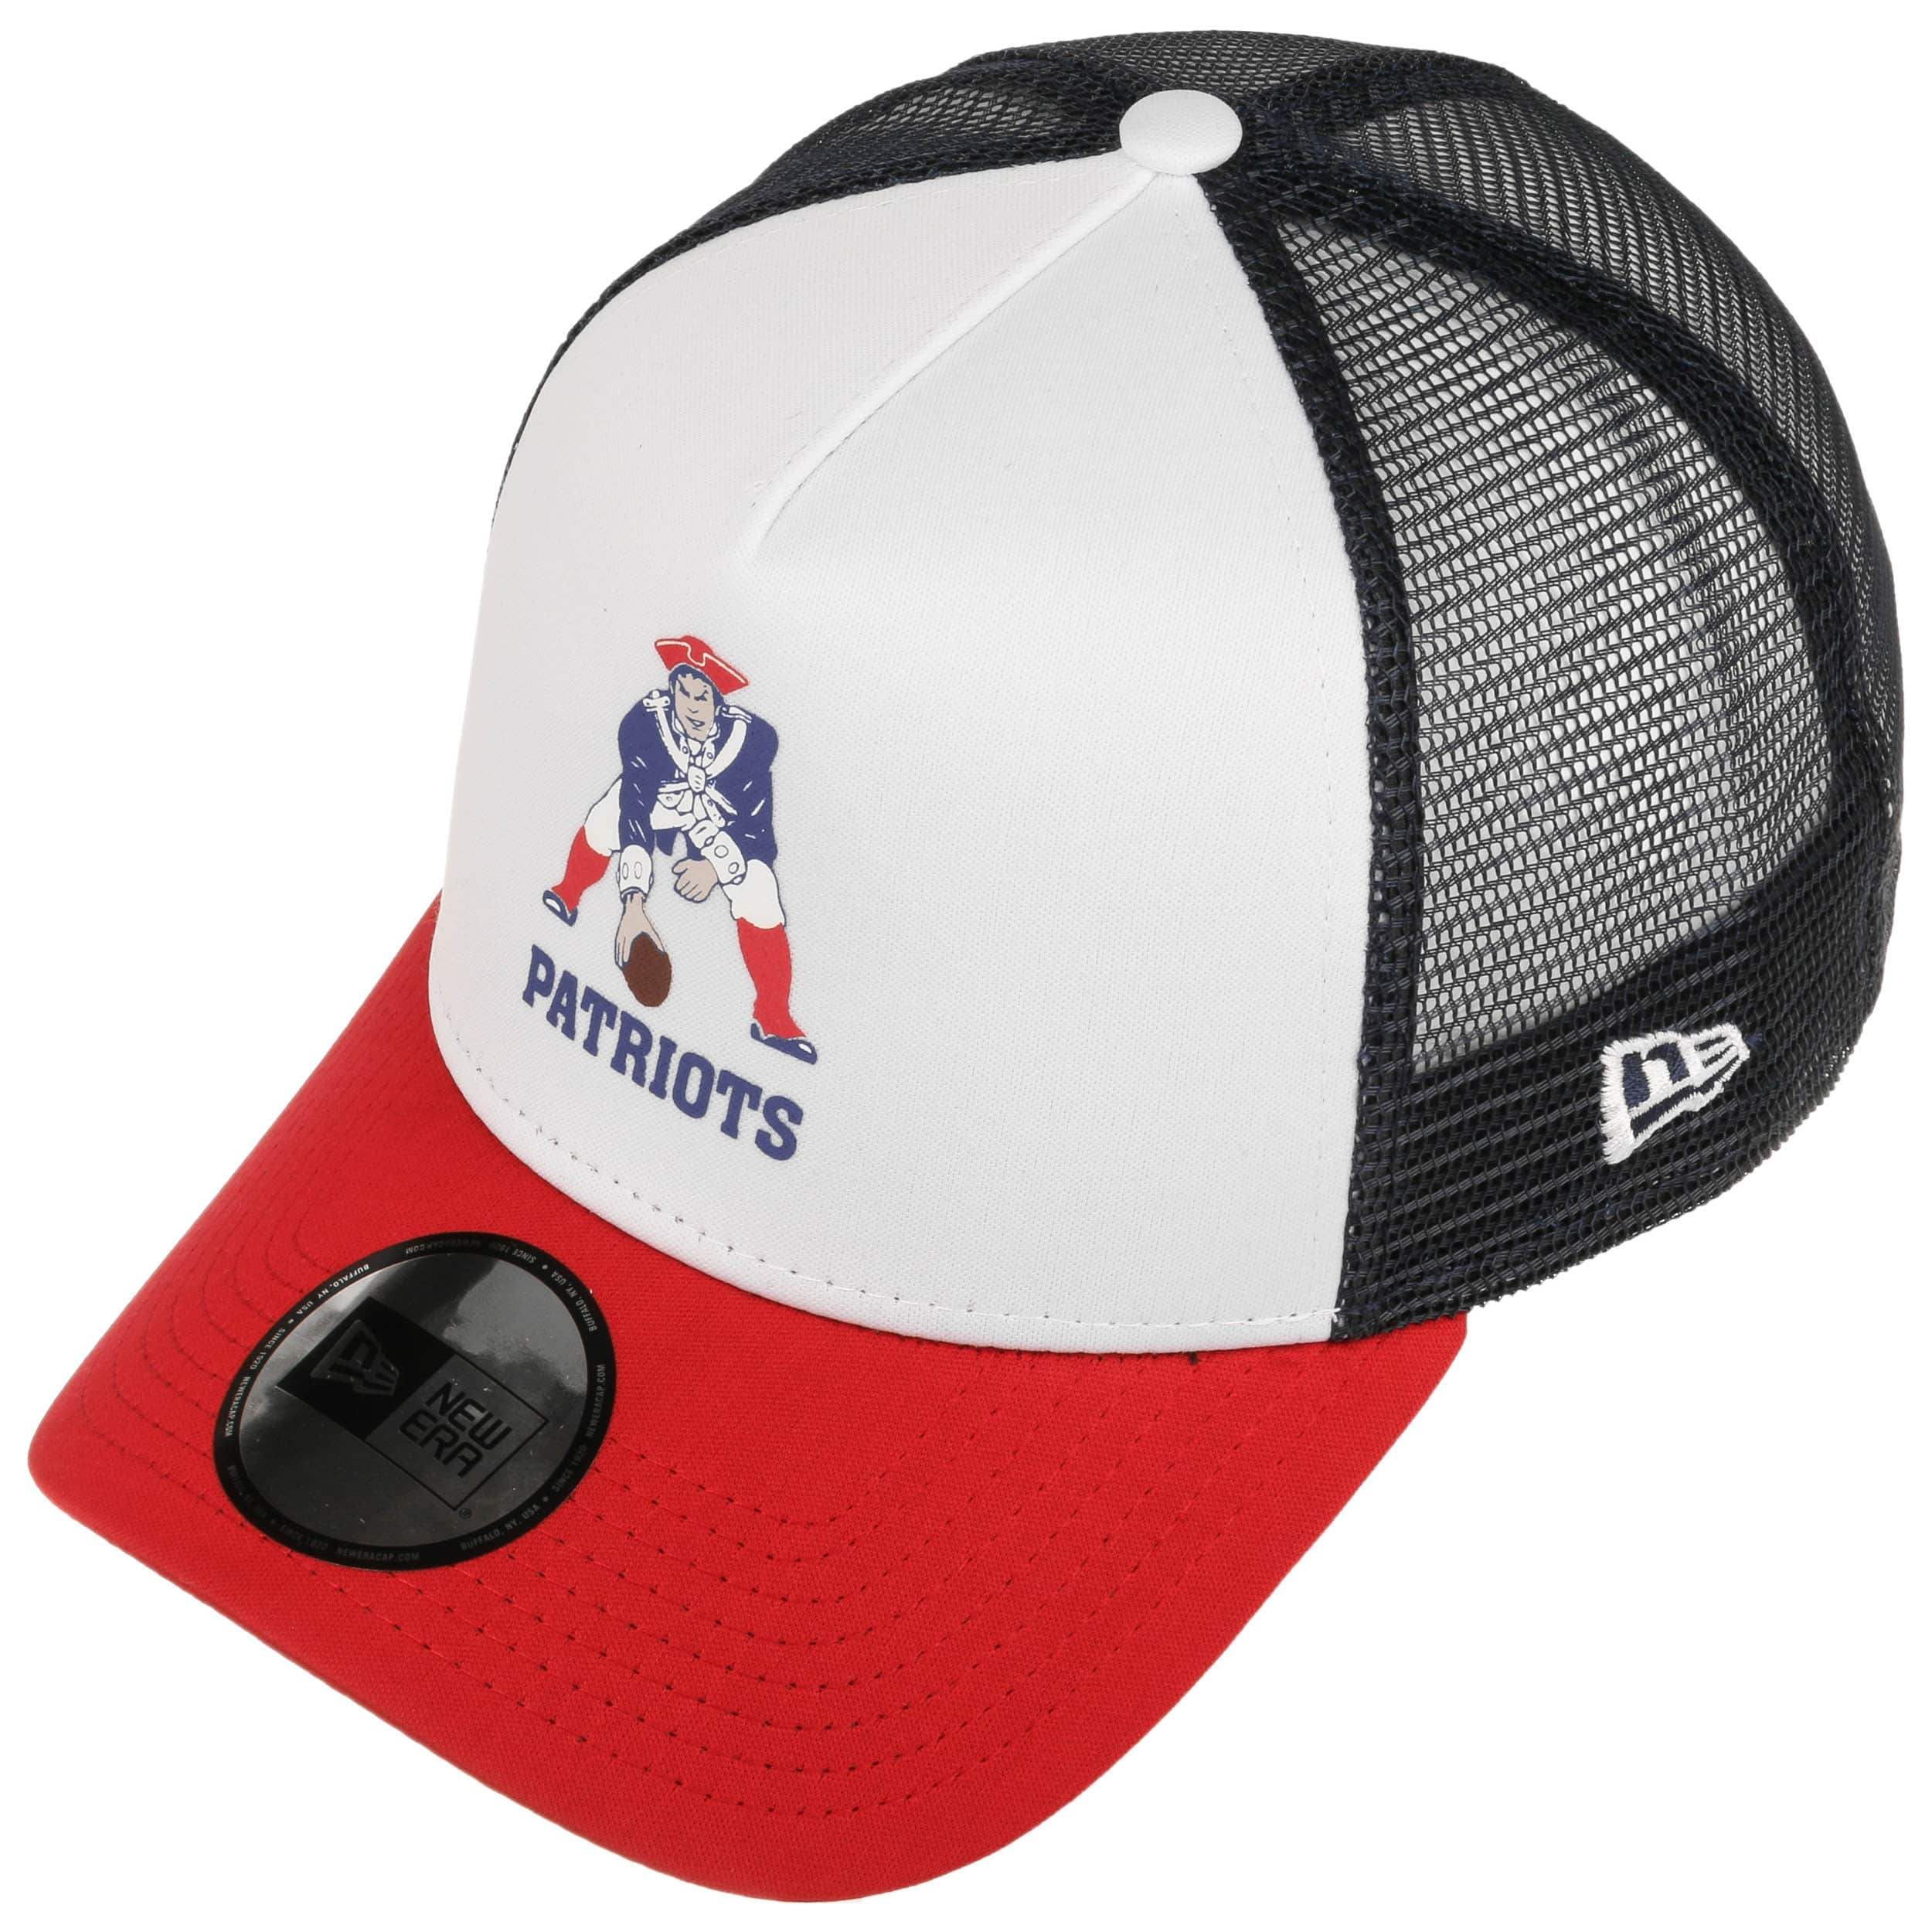 NFL Throwback Trucker Patriots Cap by New Era - white 1 ... 0c8bac3499a